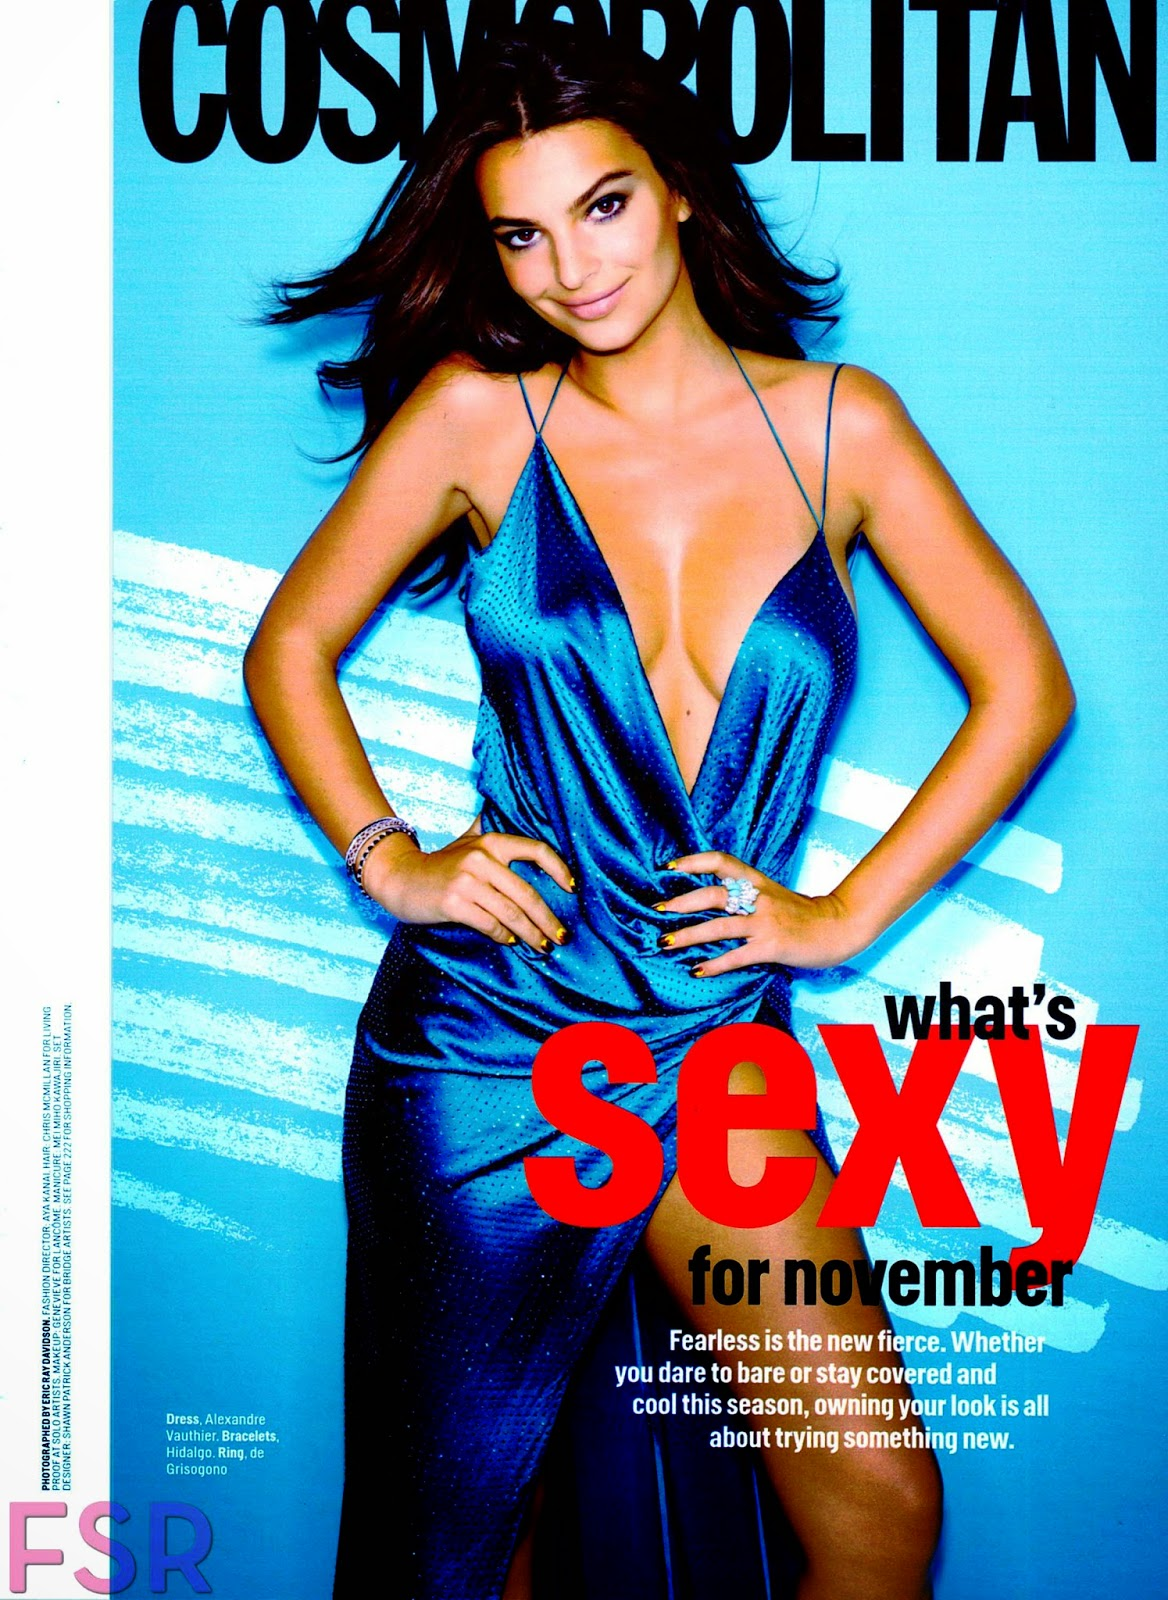 Emily Ratajkowski Busts Out For Cosmo